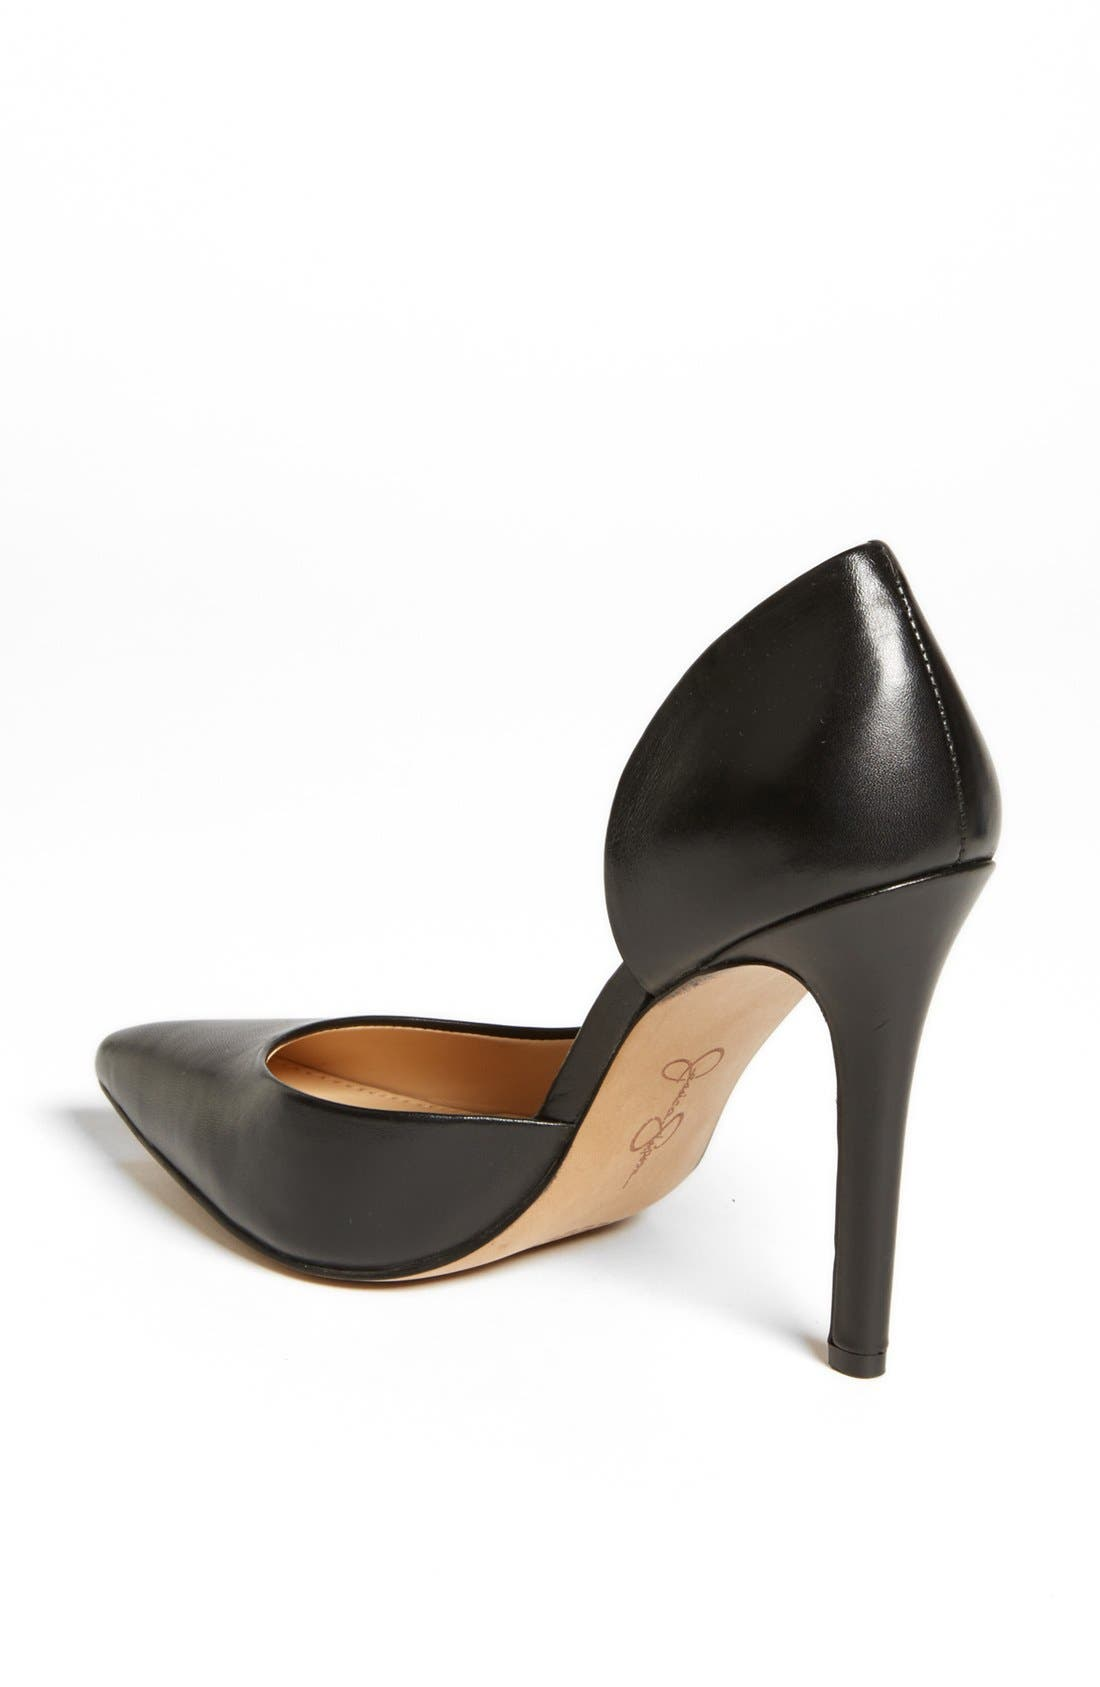 JESSICA SIMPSON,                             'Claudette' Half d'Orsay Pump,                             Alternate thumbnail 5, color,                             001